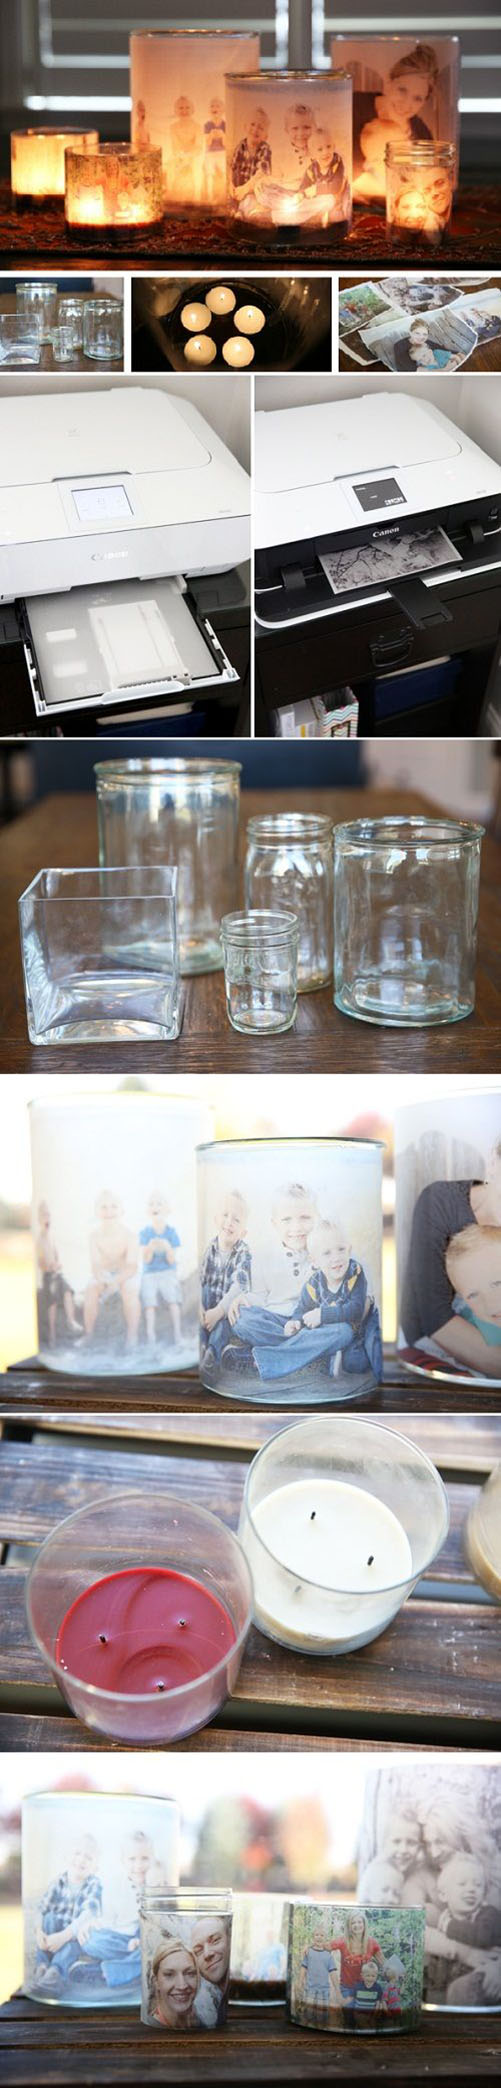 16 DIY Glowing Photo Luminaries d2e0c03